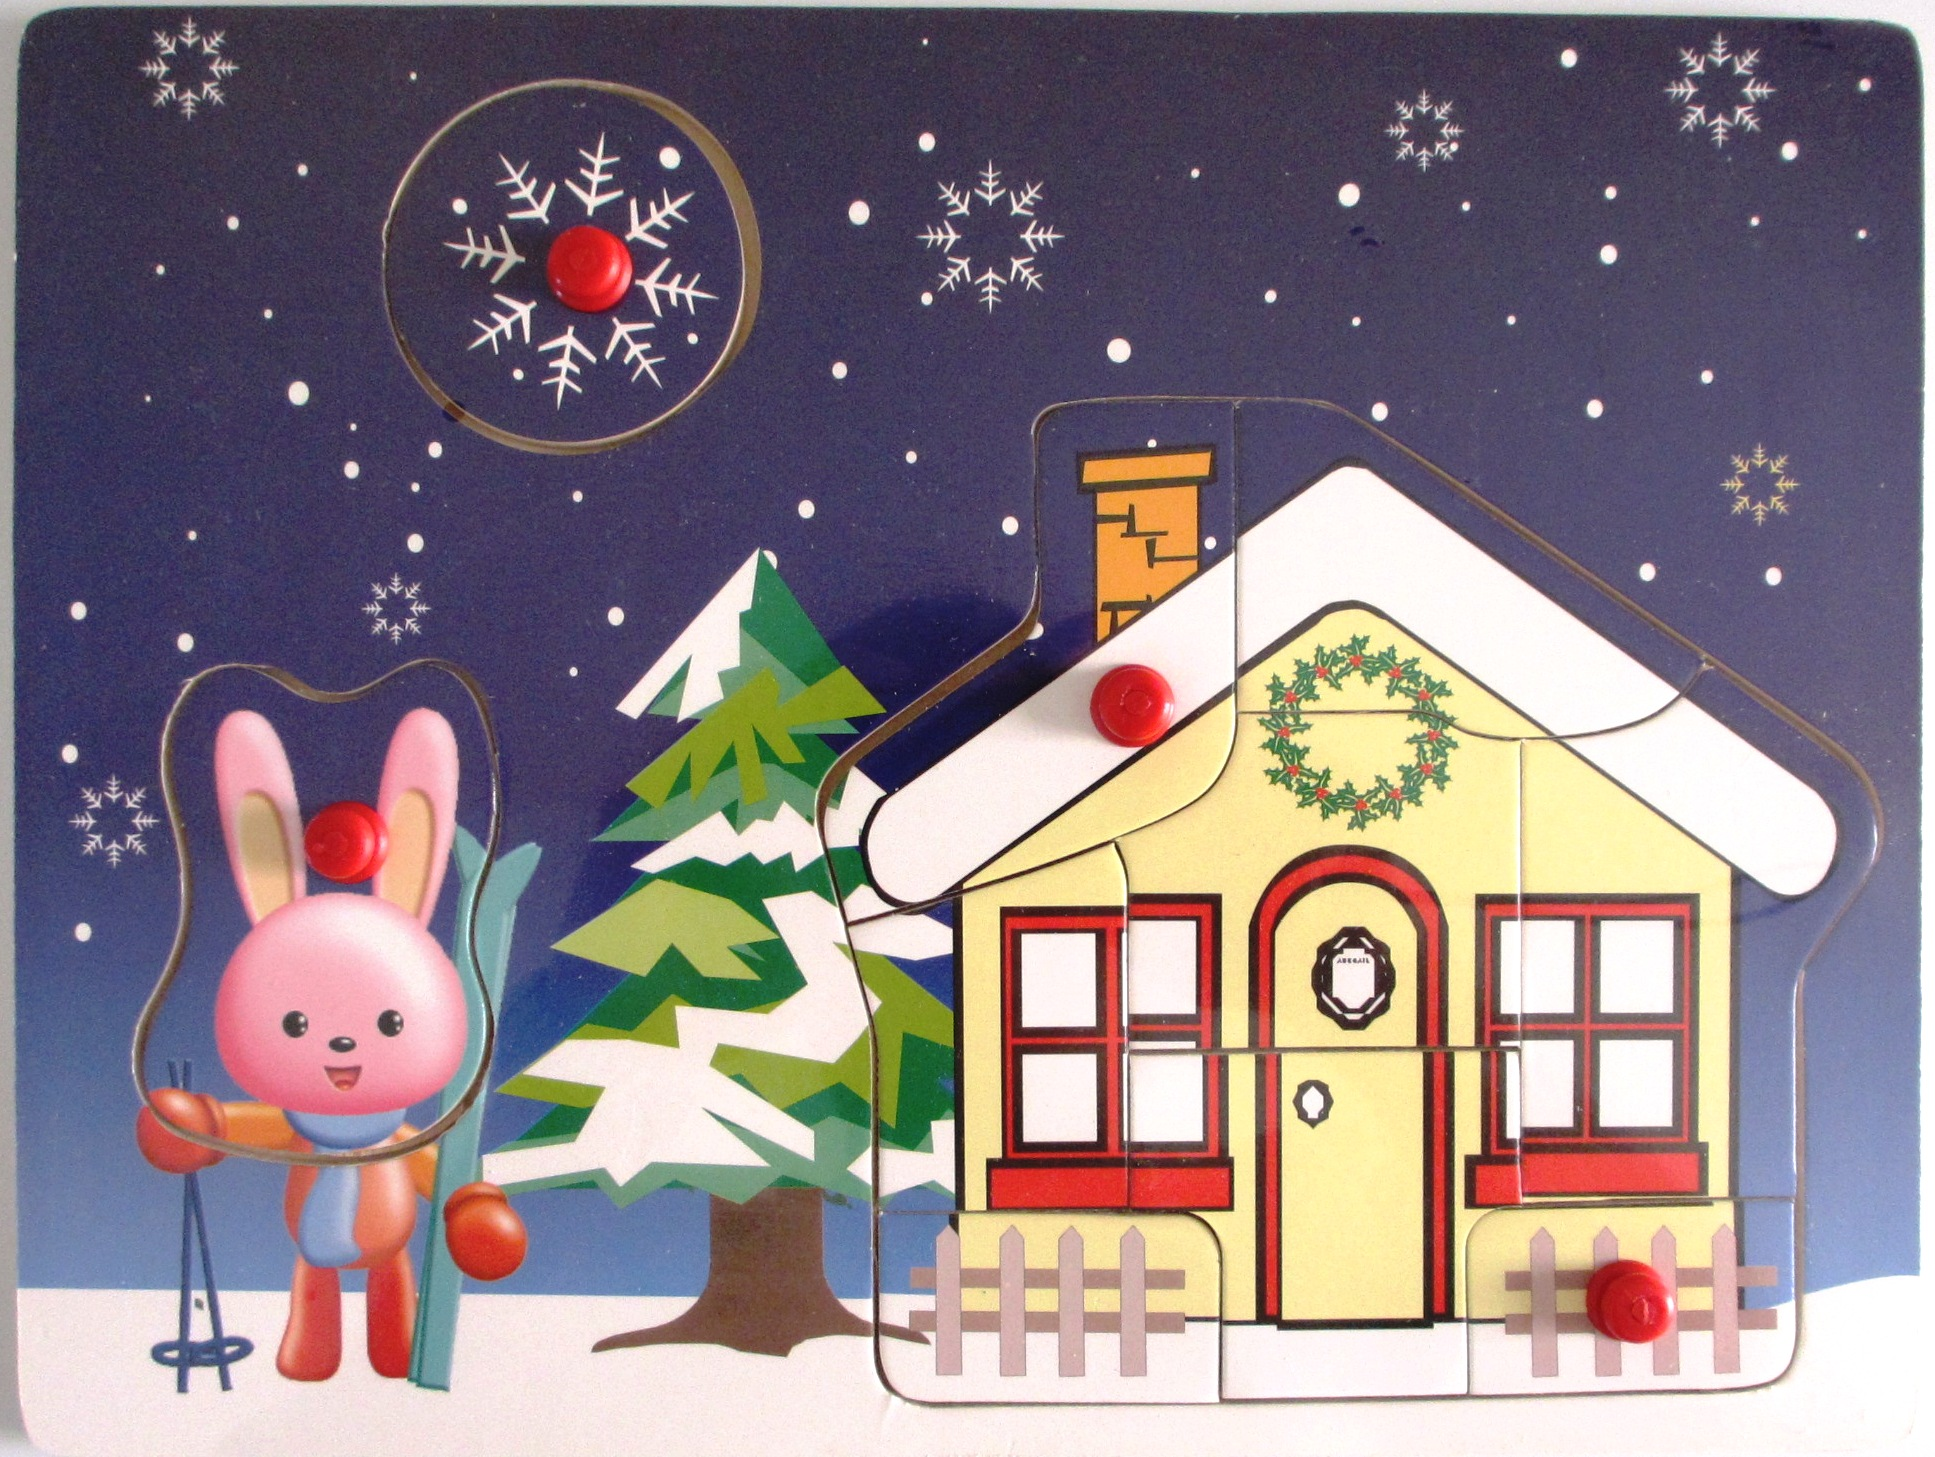 xmas wooden jigsaw puzzle